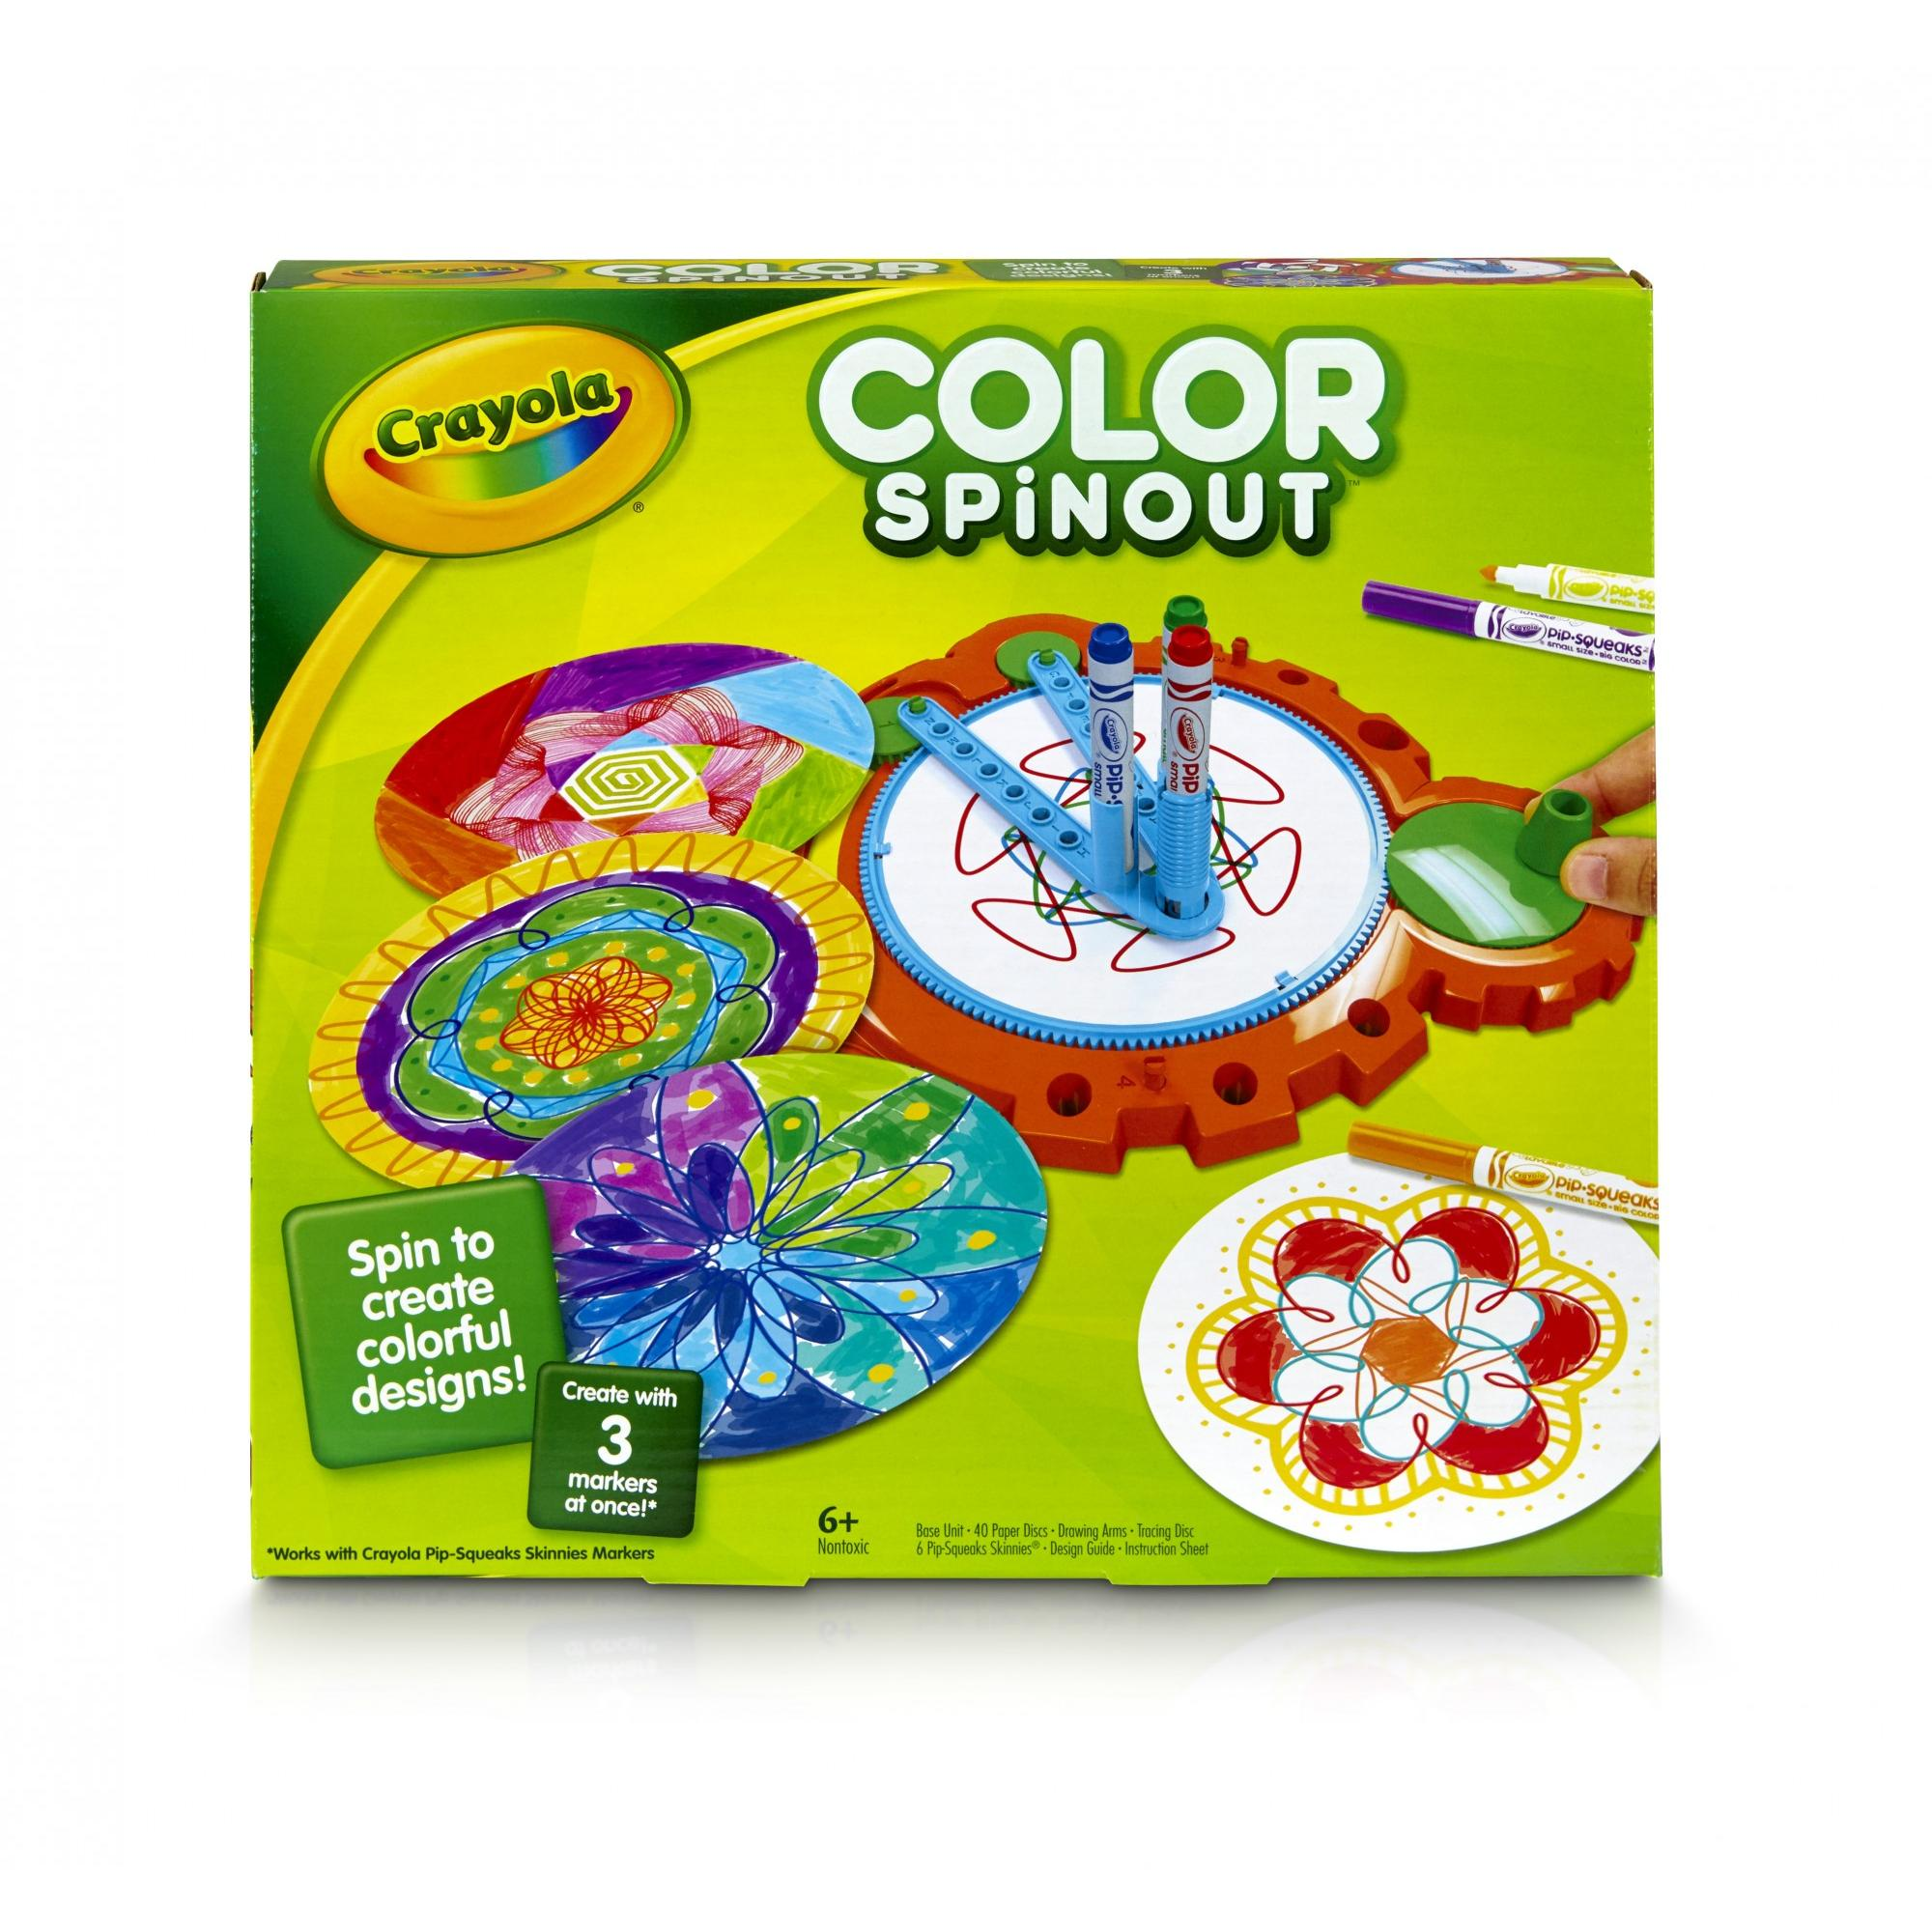 Crayola Color Spinout, Includes Unit, 6 Pip Skinny Markers, Design Guide and Instructions